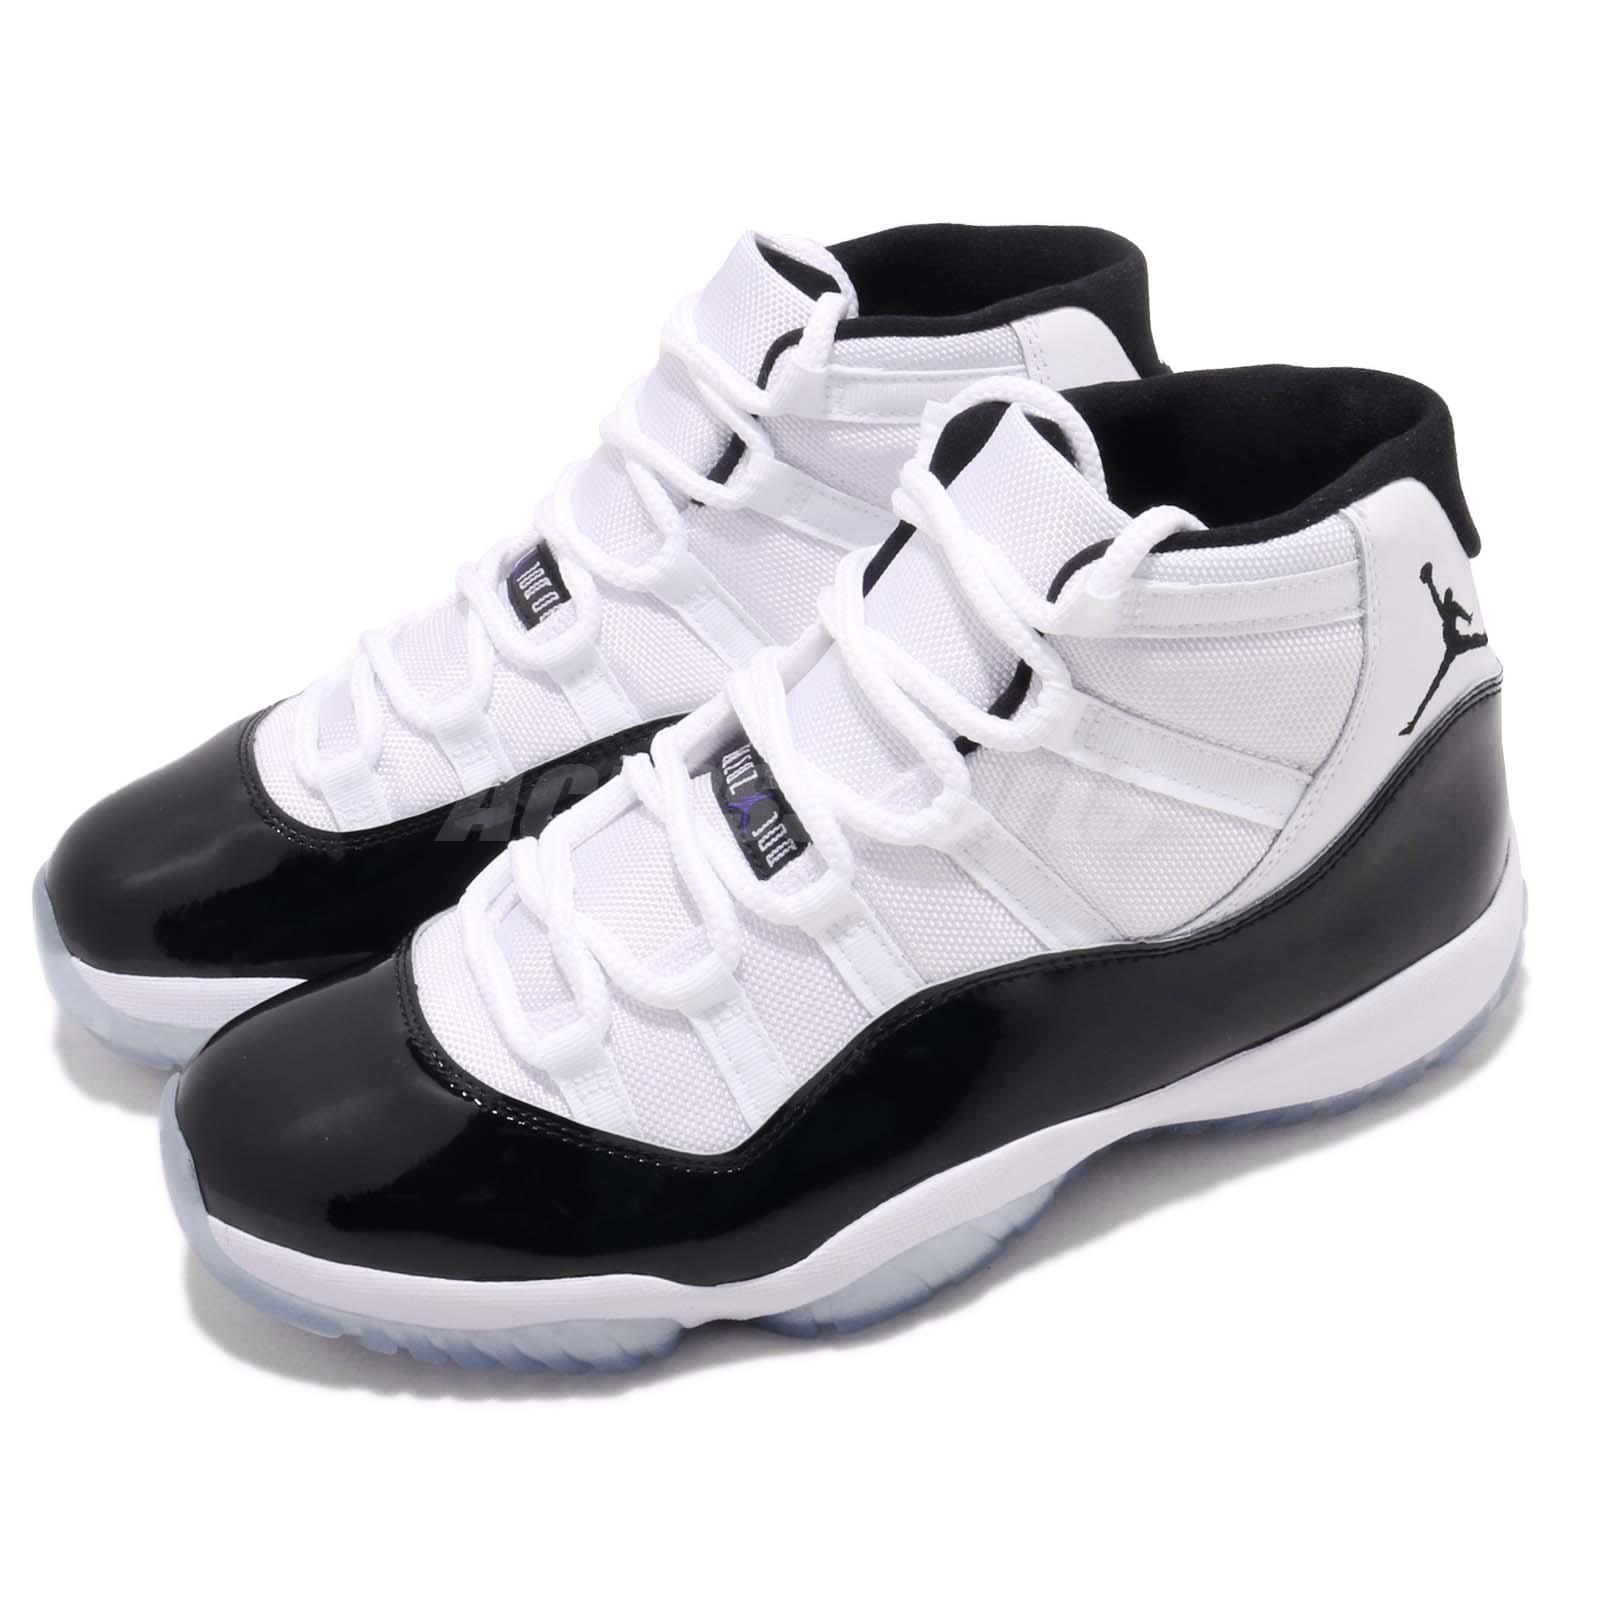 0b77334c6ed4c7 Details about Nike Air Jordan 11 Retro Concord XI OG 2018 White Black AJ11 Men  Shoe 378037-100